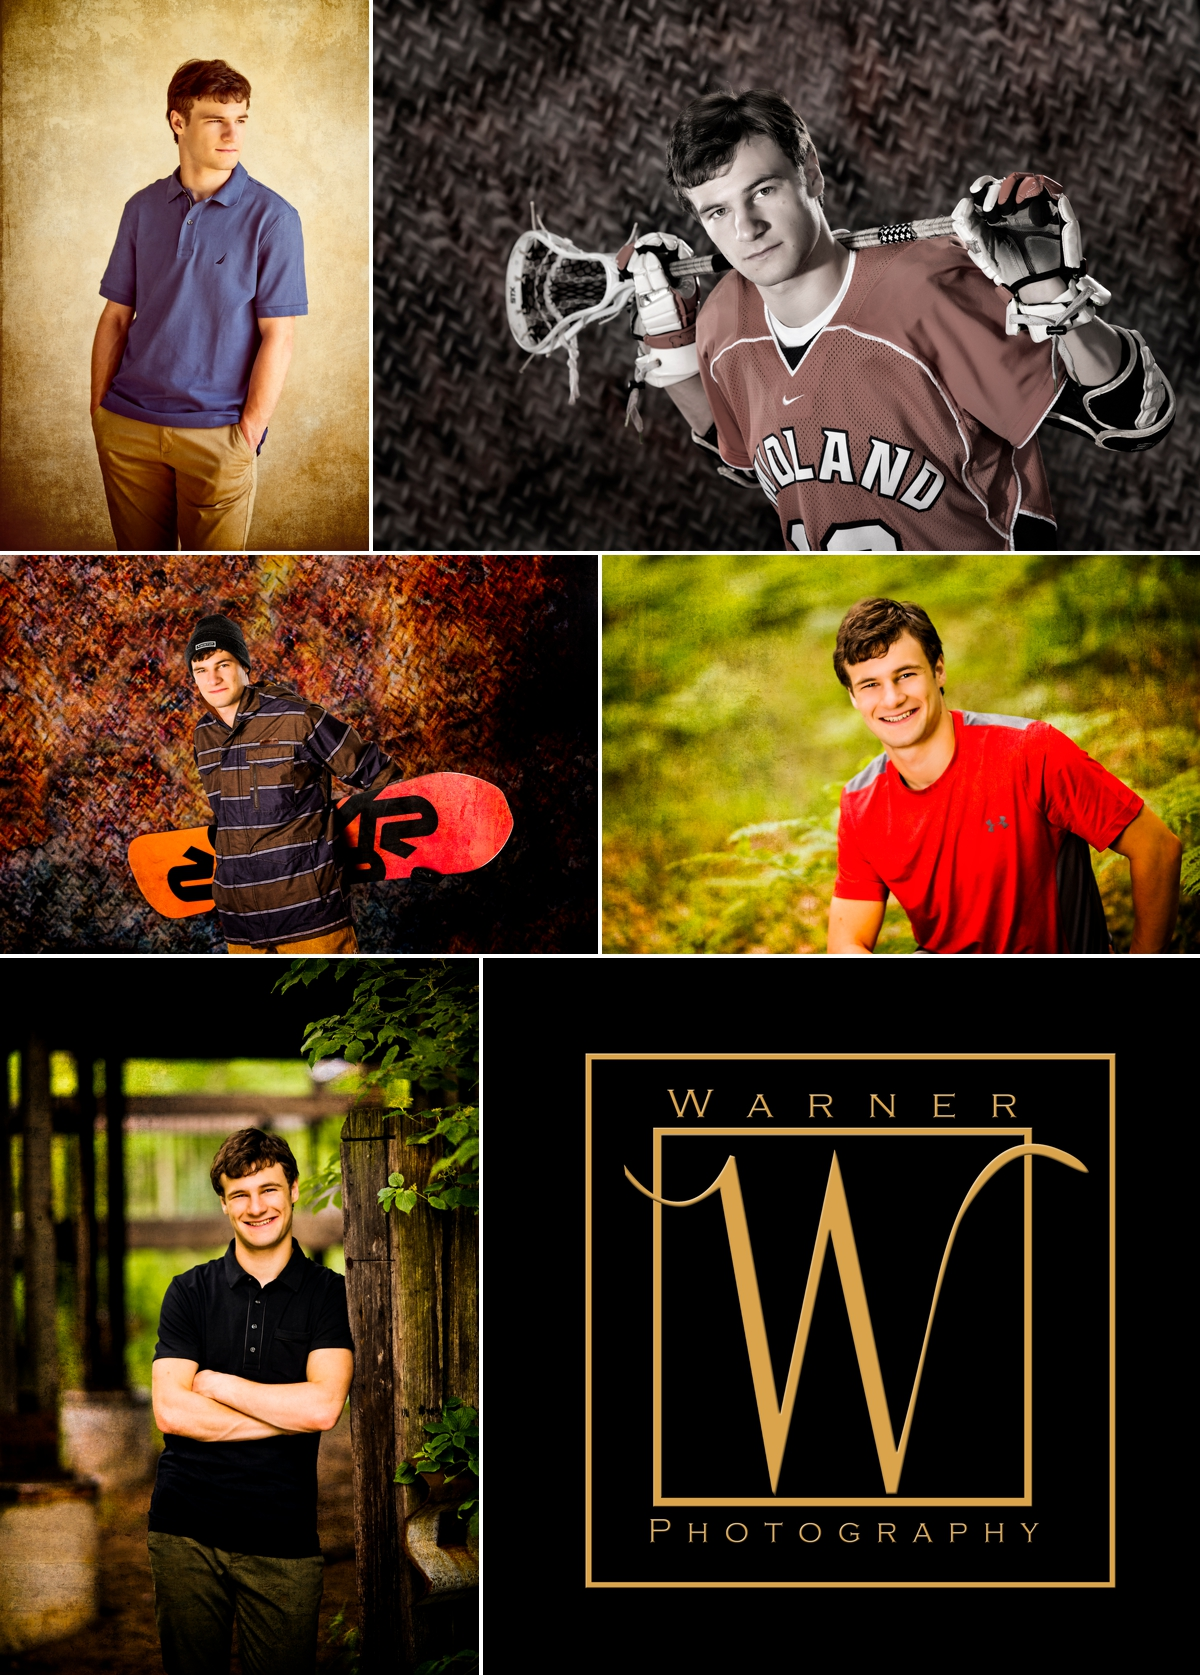 Kyle Senior collage photos by Warner Photography in Midland Michigan